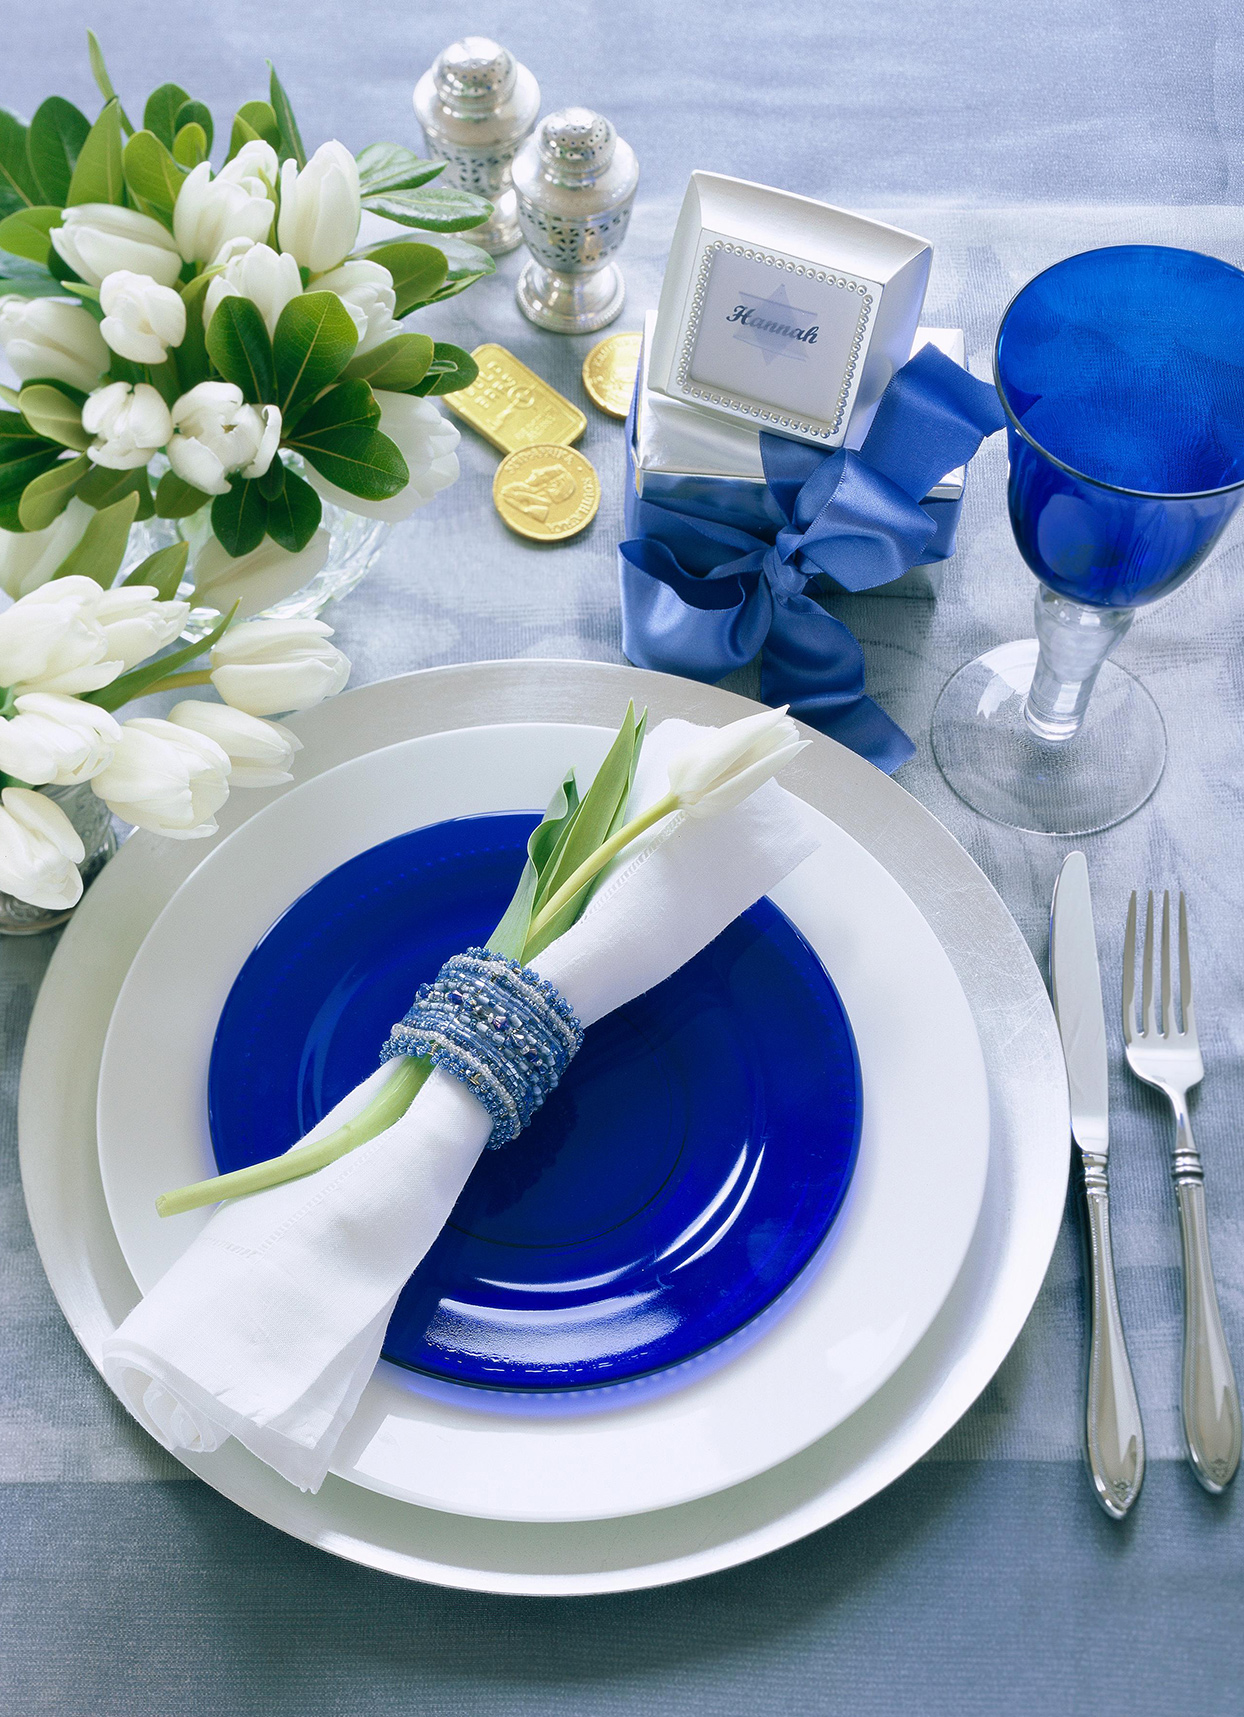 blue and white menorah-inspired place setting display